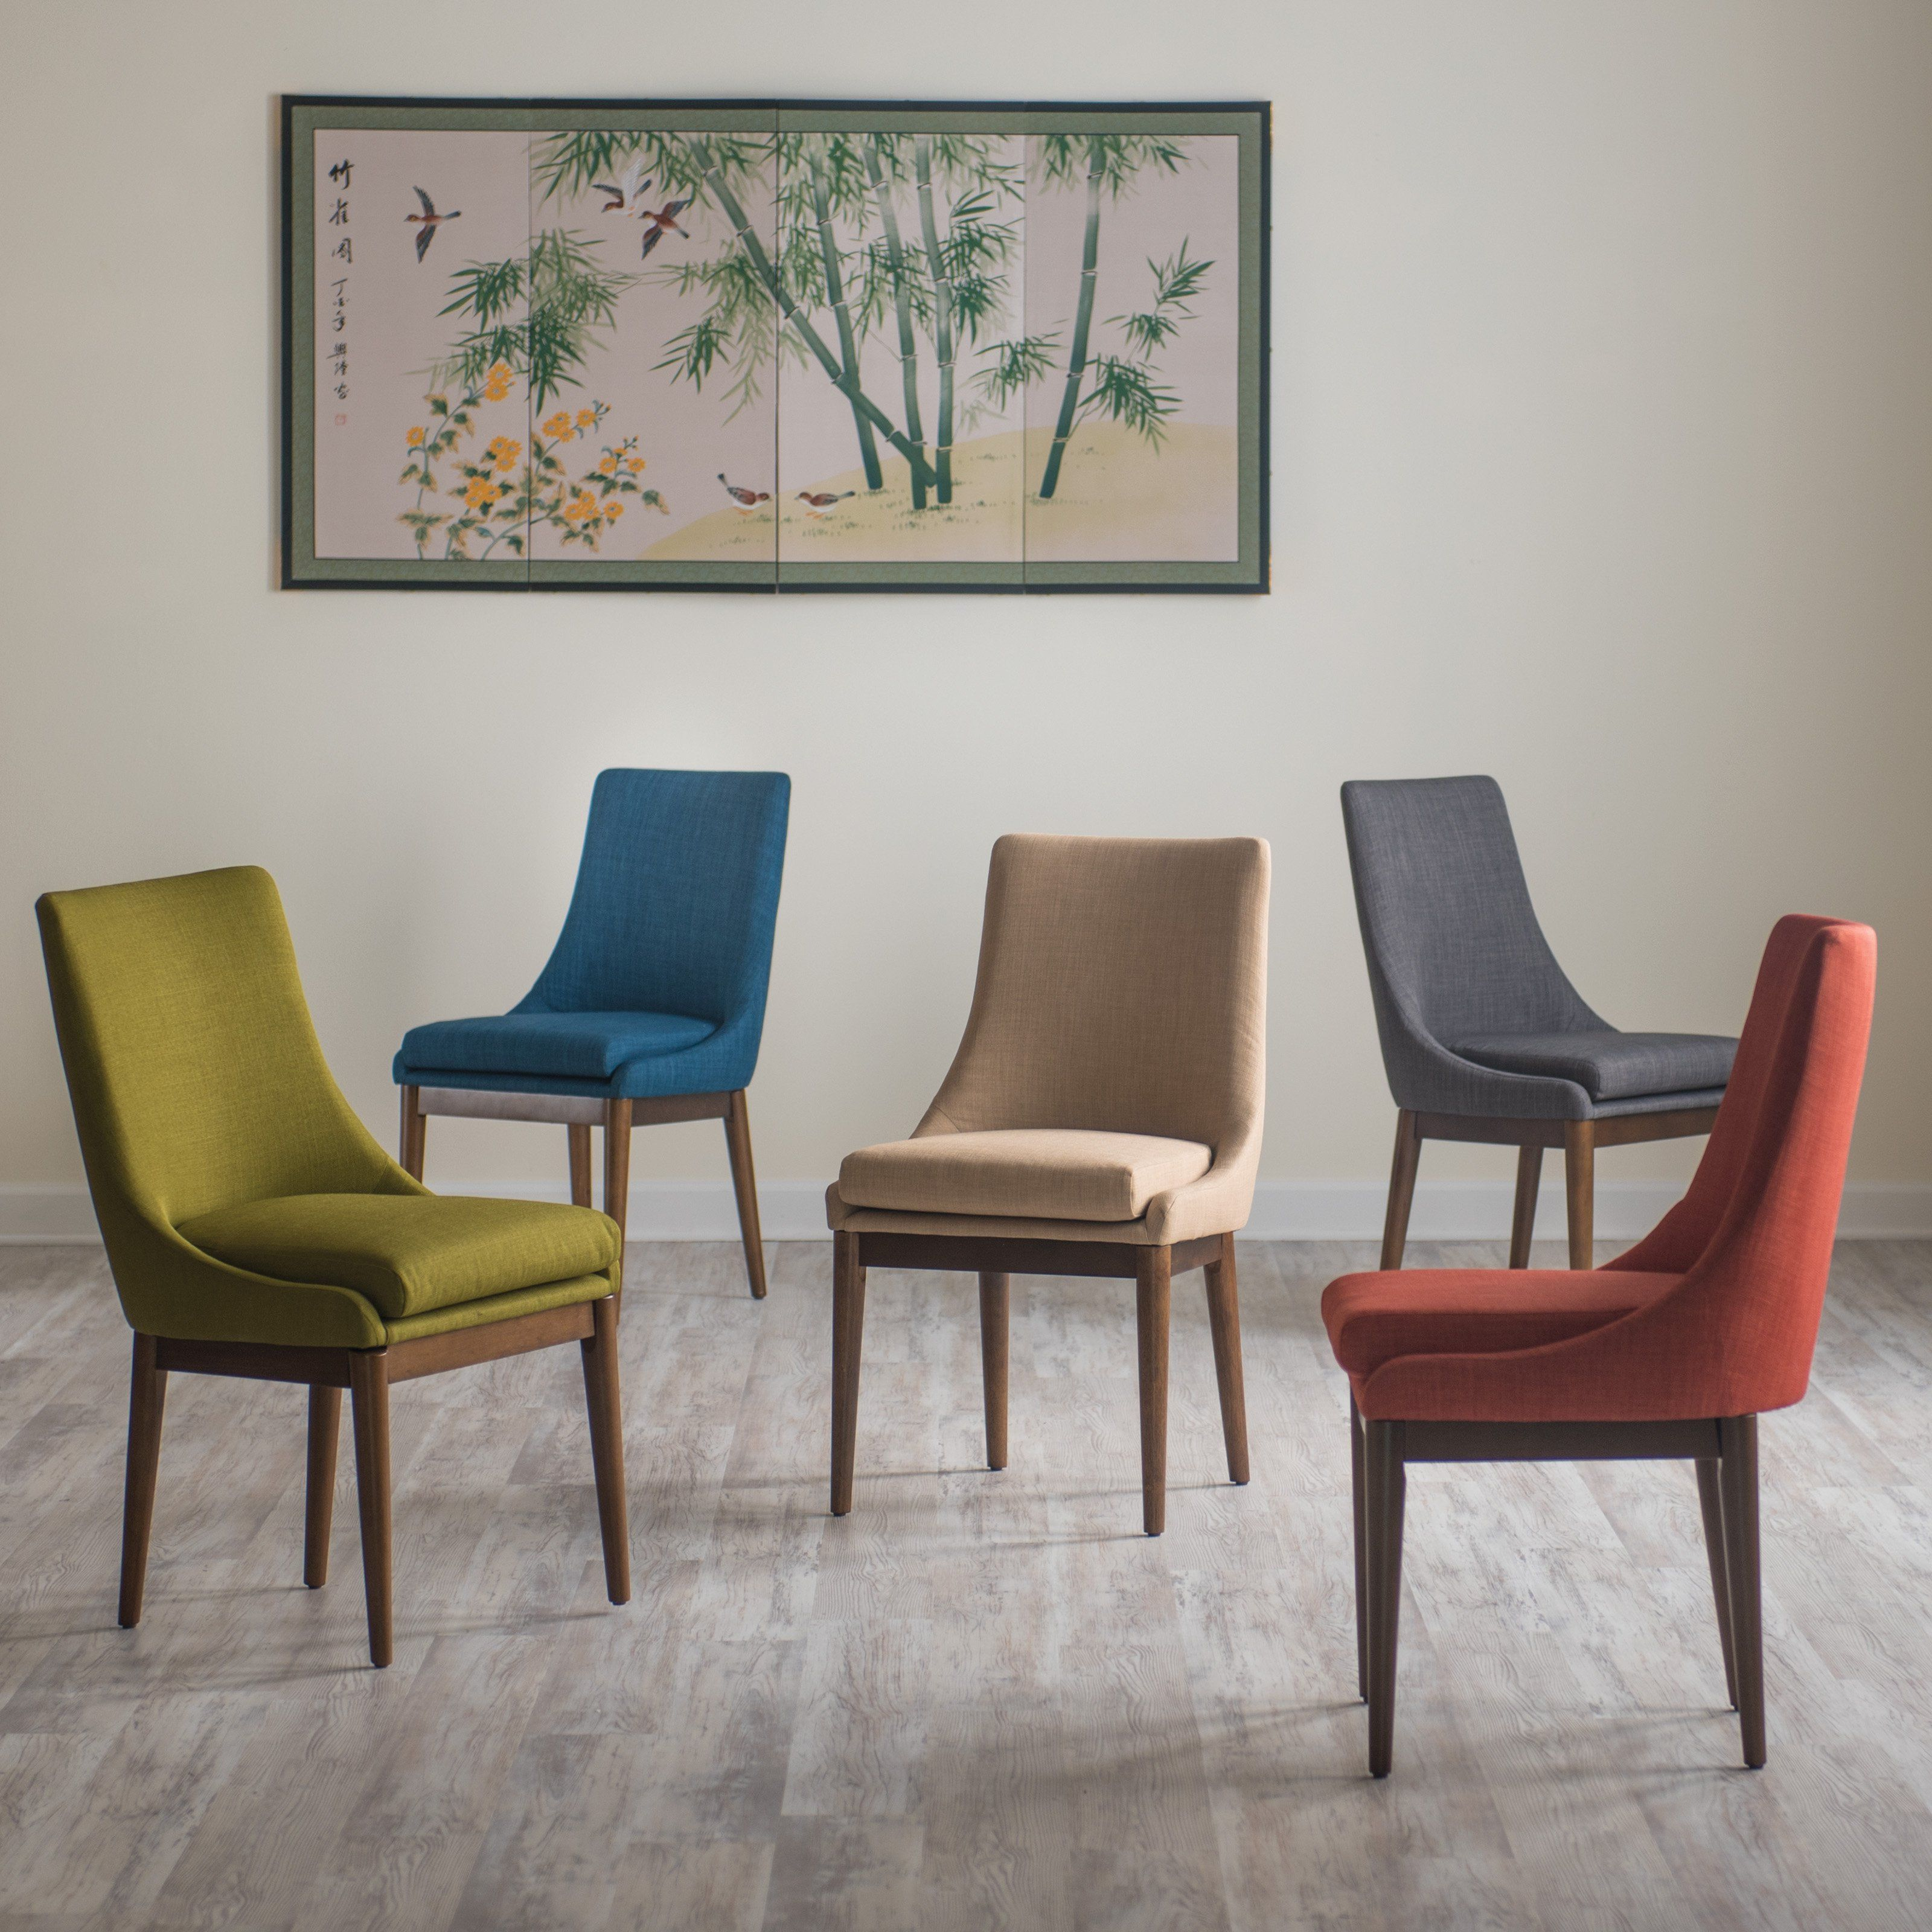 Belham Living Carter Mid Century Modern Upholstered Dining Chair Amusing 2 Chair Dining Room Set Design Inspiration